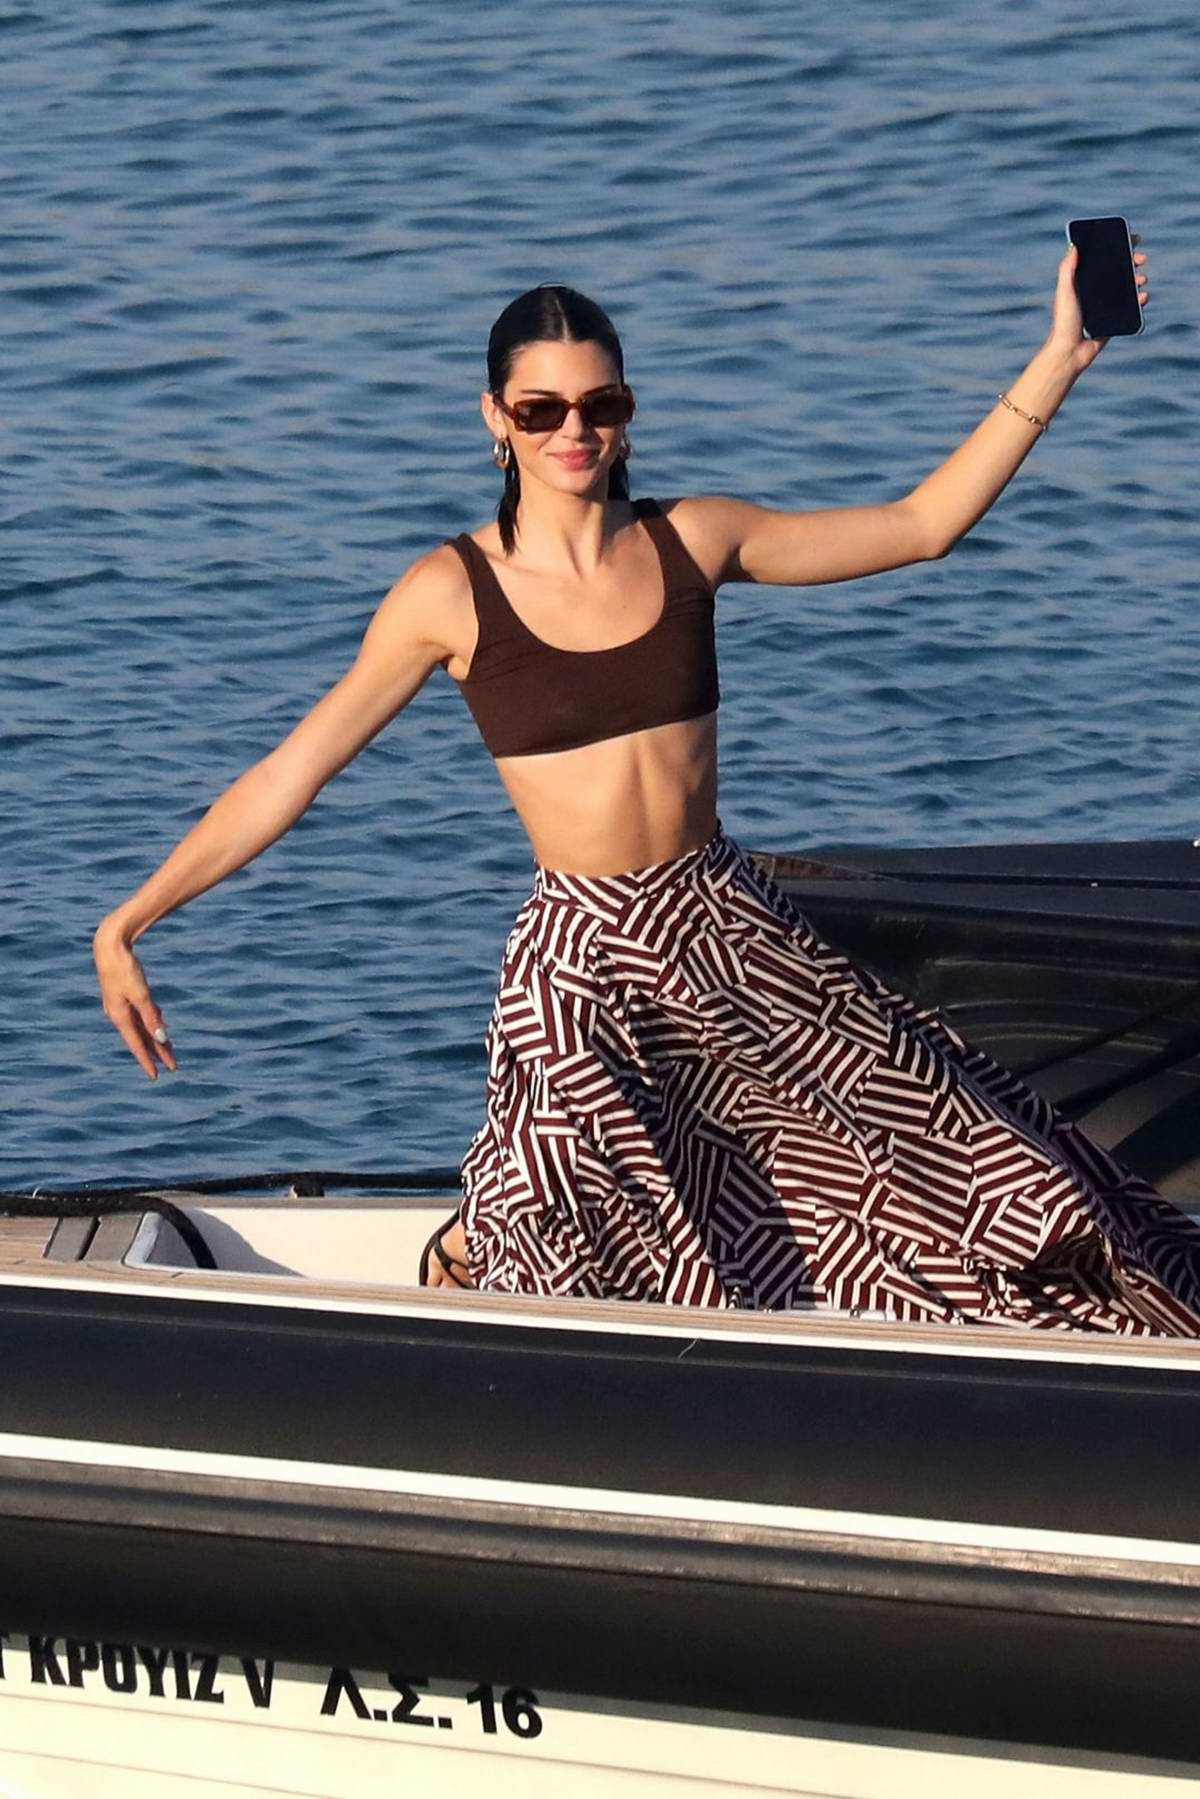 Kendall Jenner stuns in a brown crop top and patterned skirt while enjoying a boat ride in Mykonos, Greece